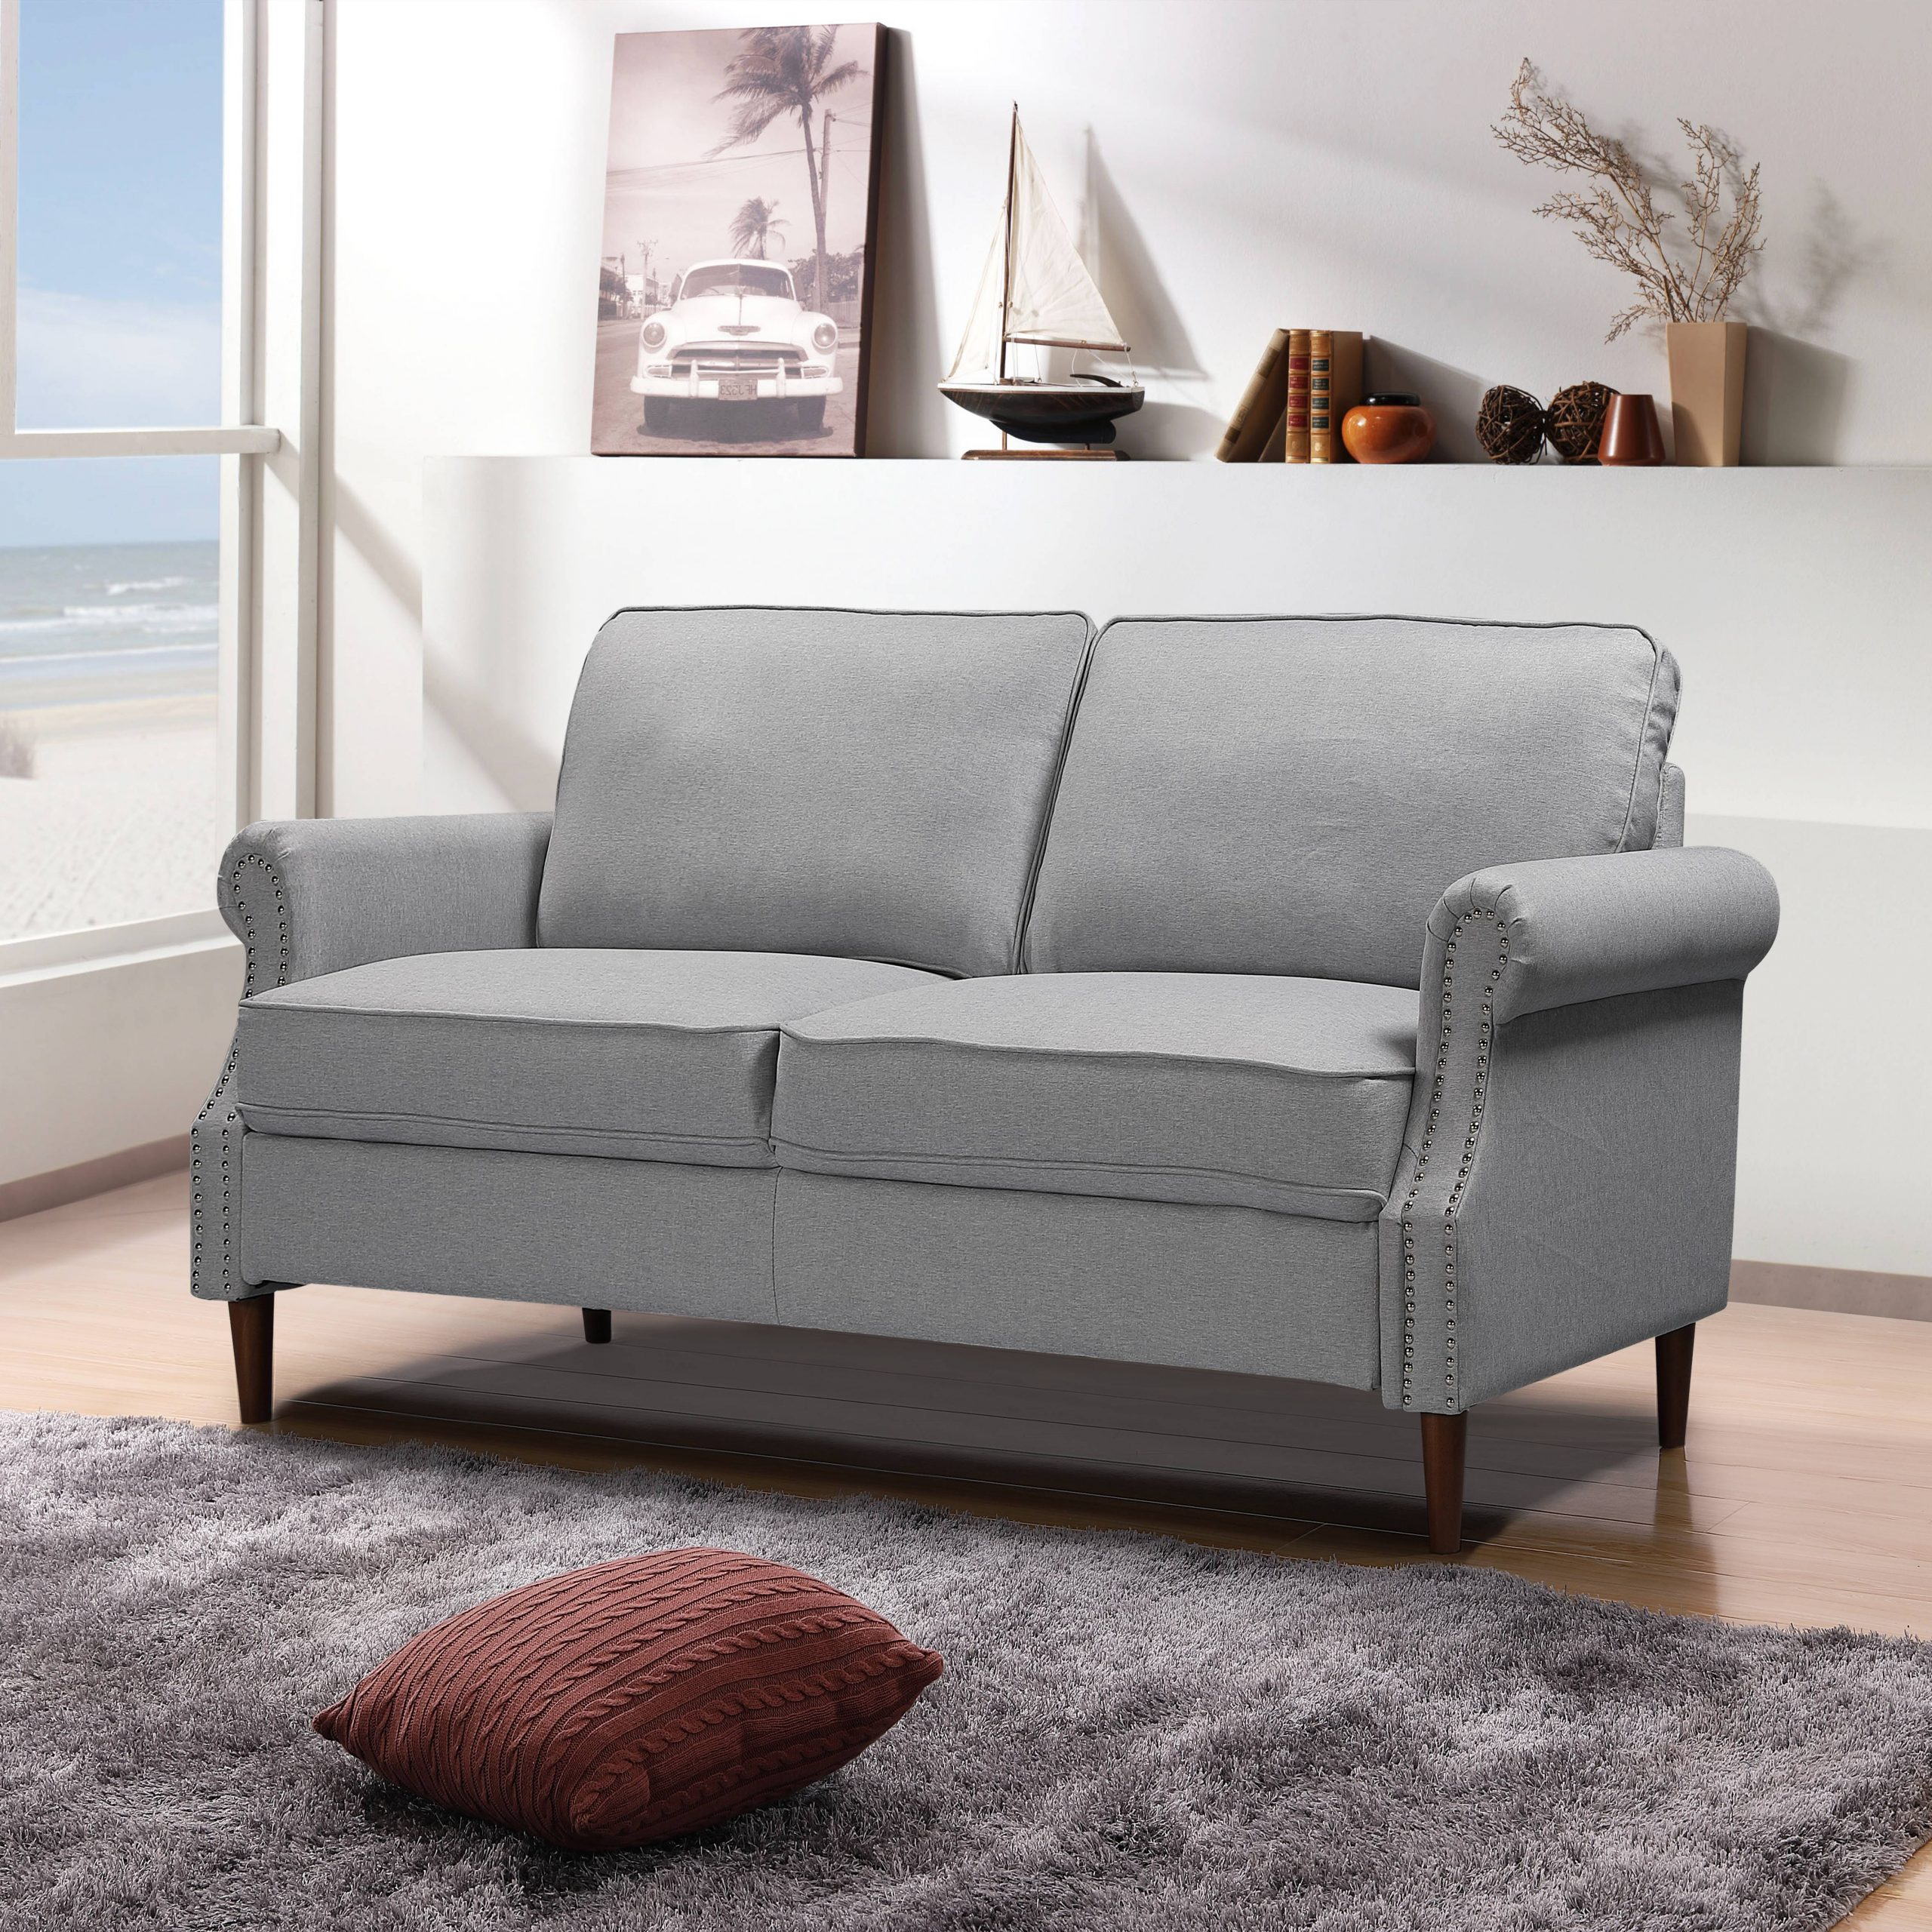 Gray Loveseat, Modern Linen Farbic Sofas For Small Spaces With Regard To Sofa Chairs For Bedroom (View 1 of 15)